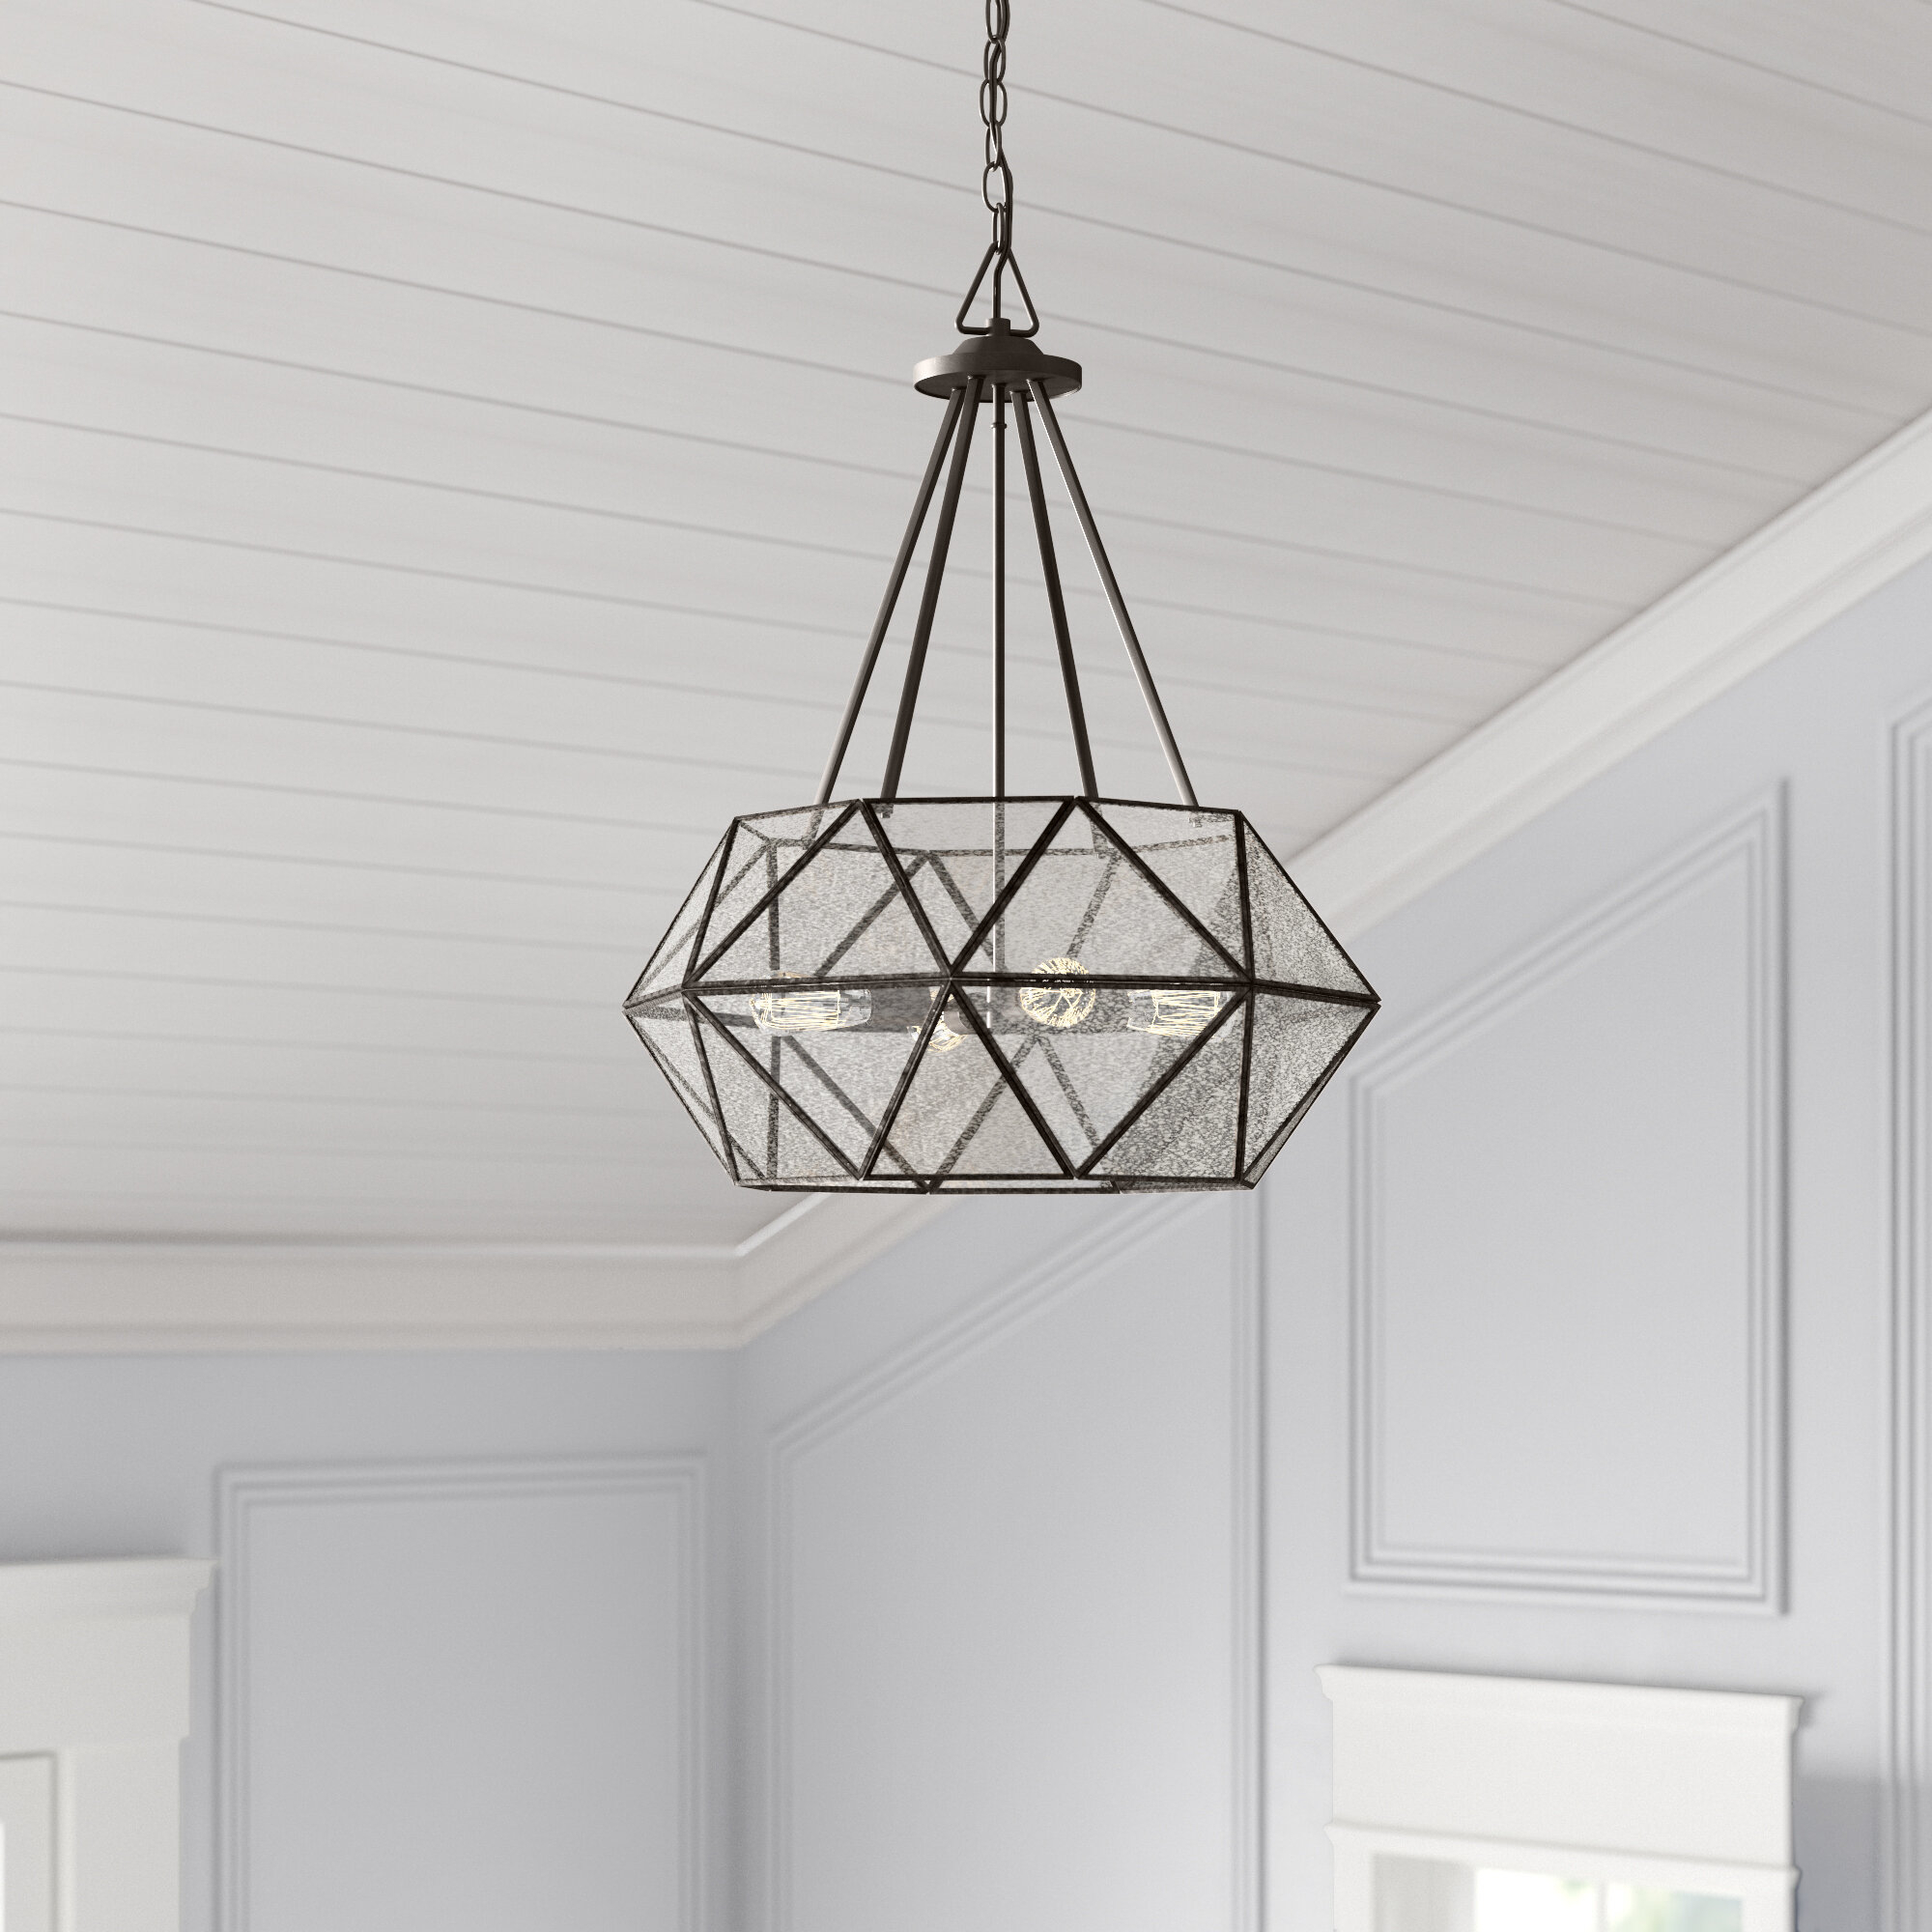 Jacey 4-Light Chandelier intended for Cavanagh 4-Light Geometric Chandeliers (Image 9 of 30)